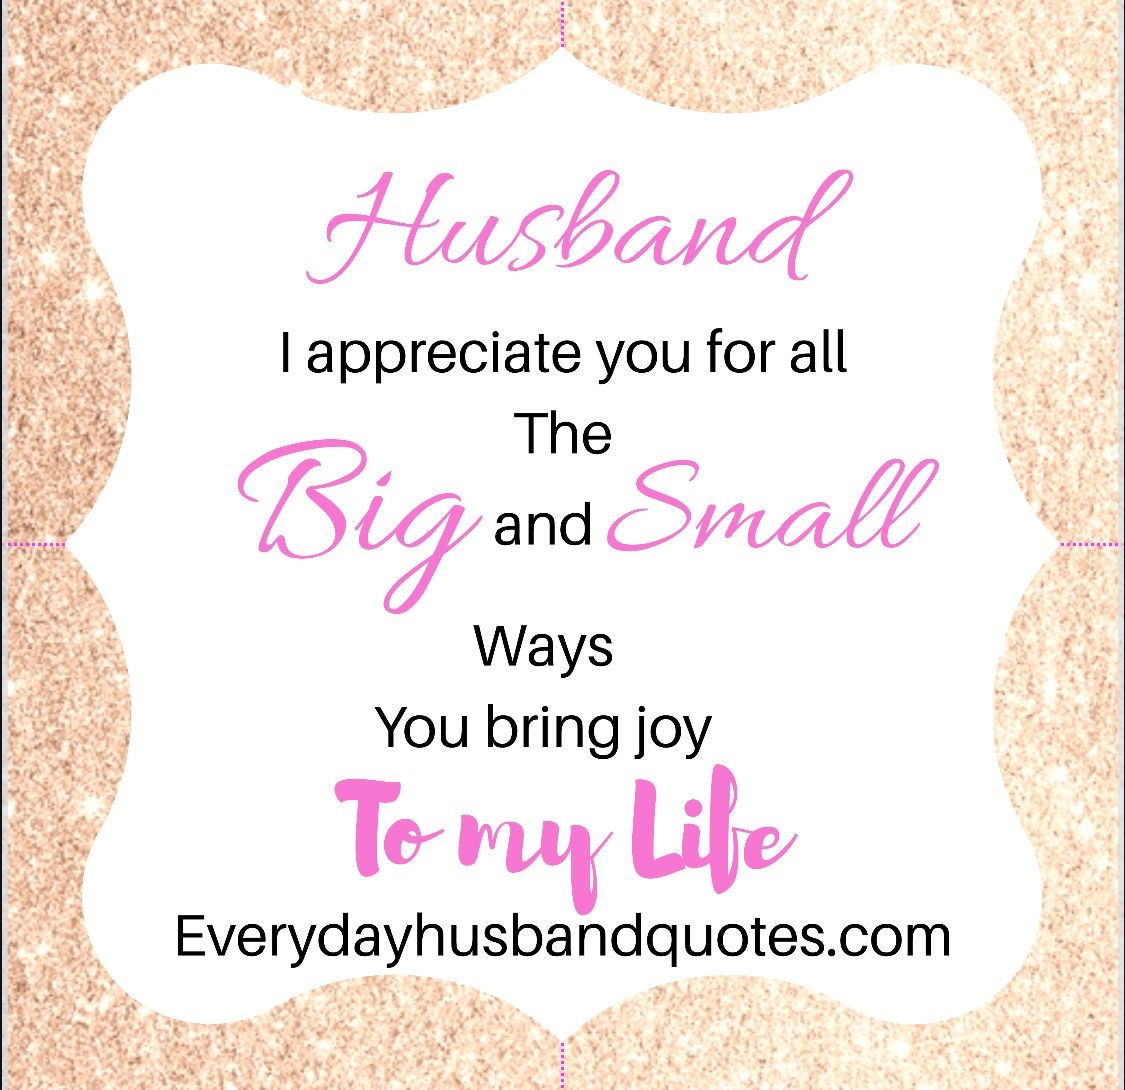 Thankful To Husband Quotes: Husband Thank You Quote: Husband I Appreciate You For All